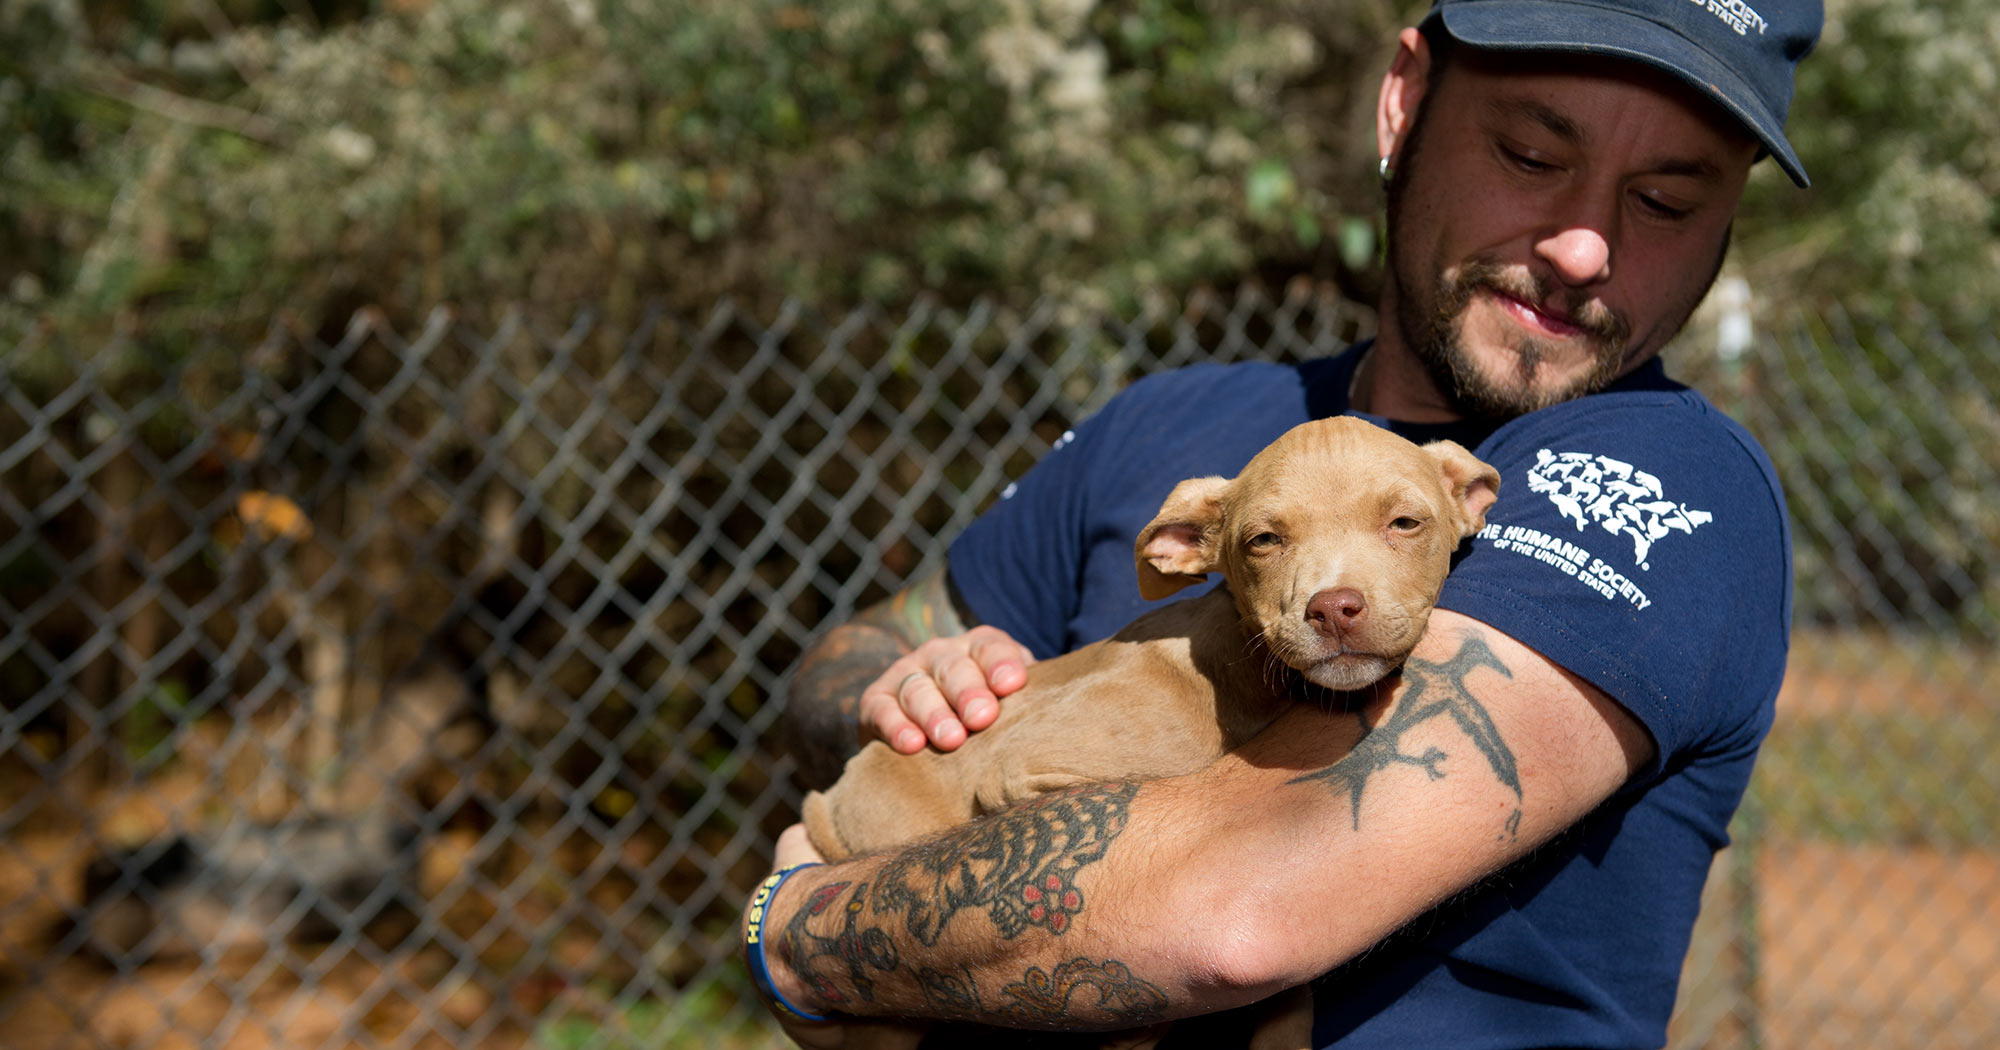 Our mission | The Humane Society of the United States